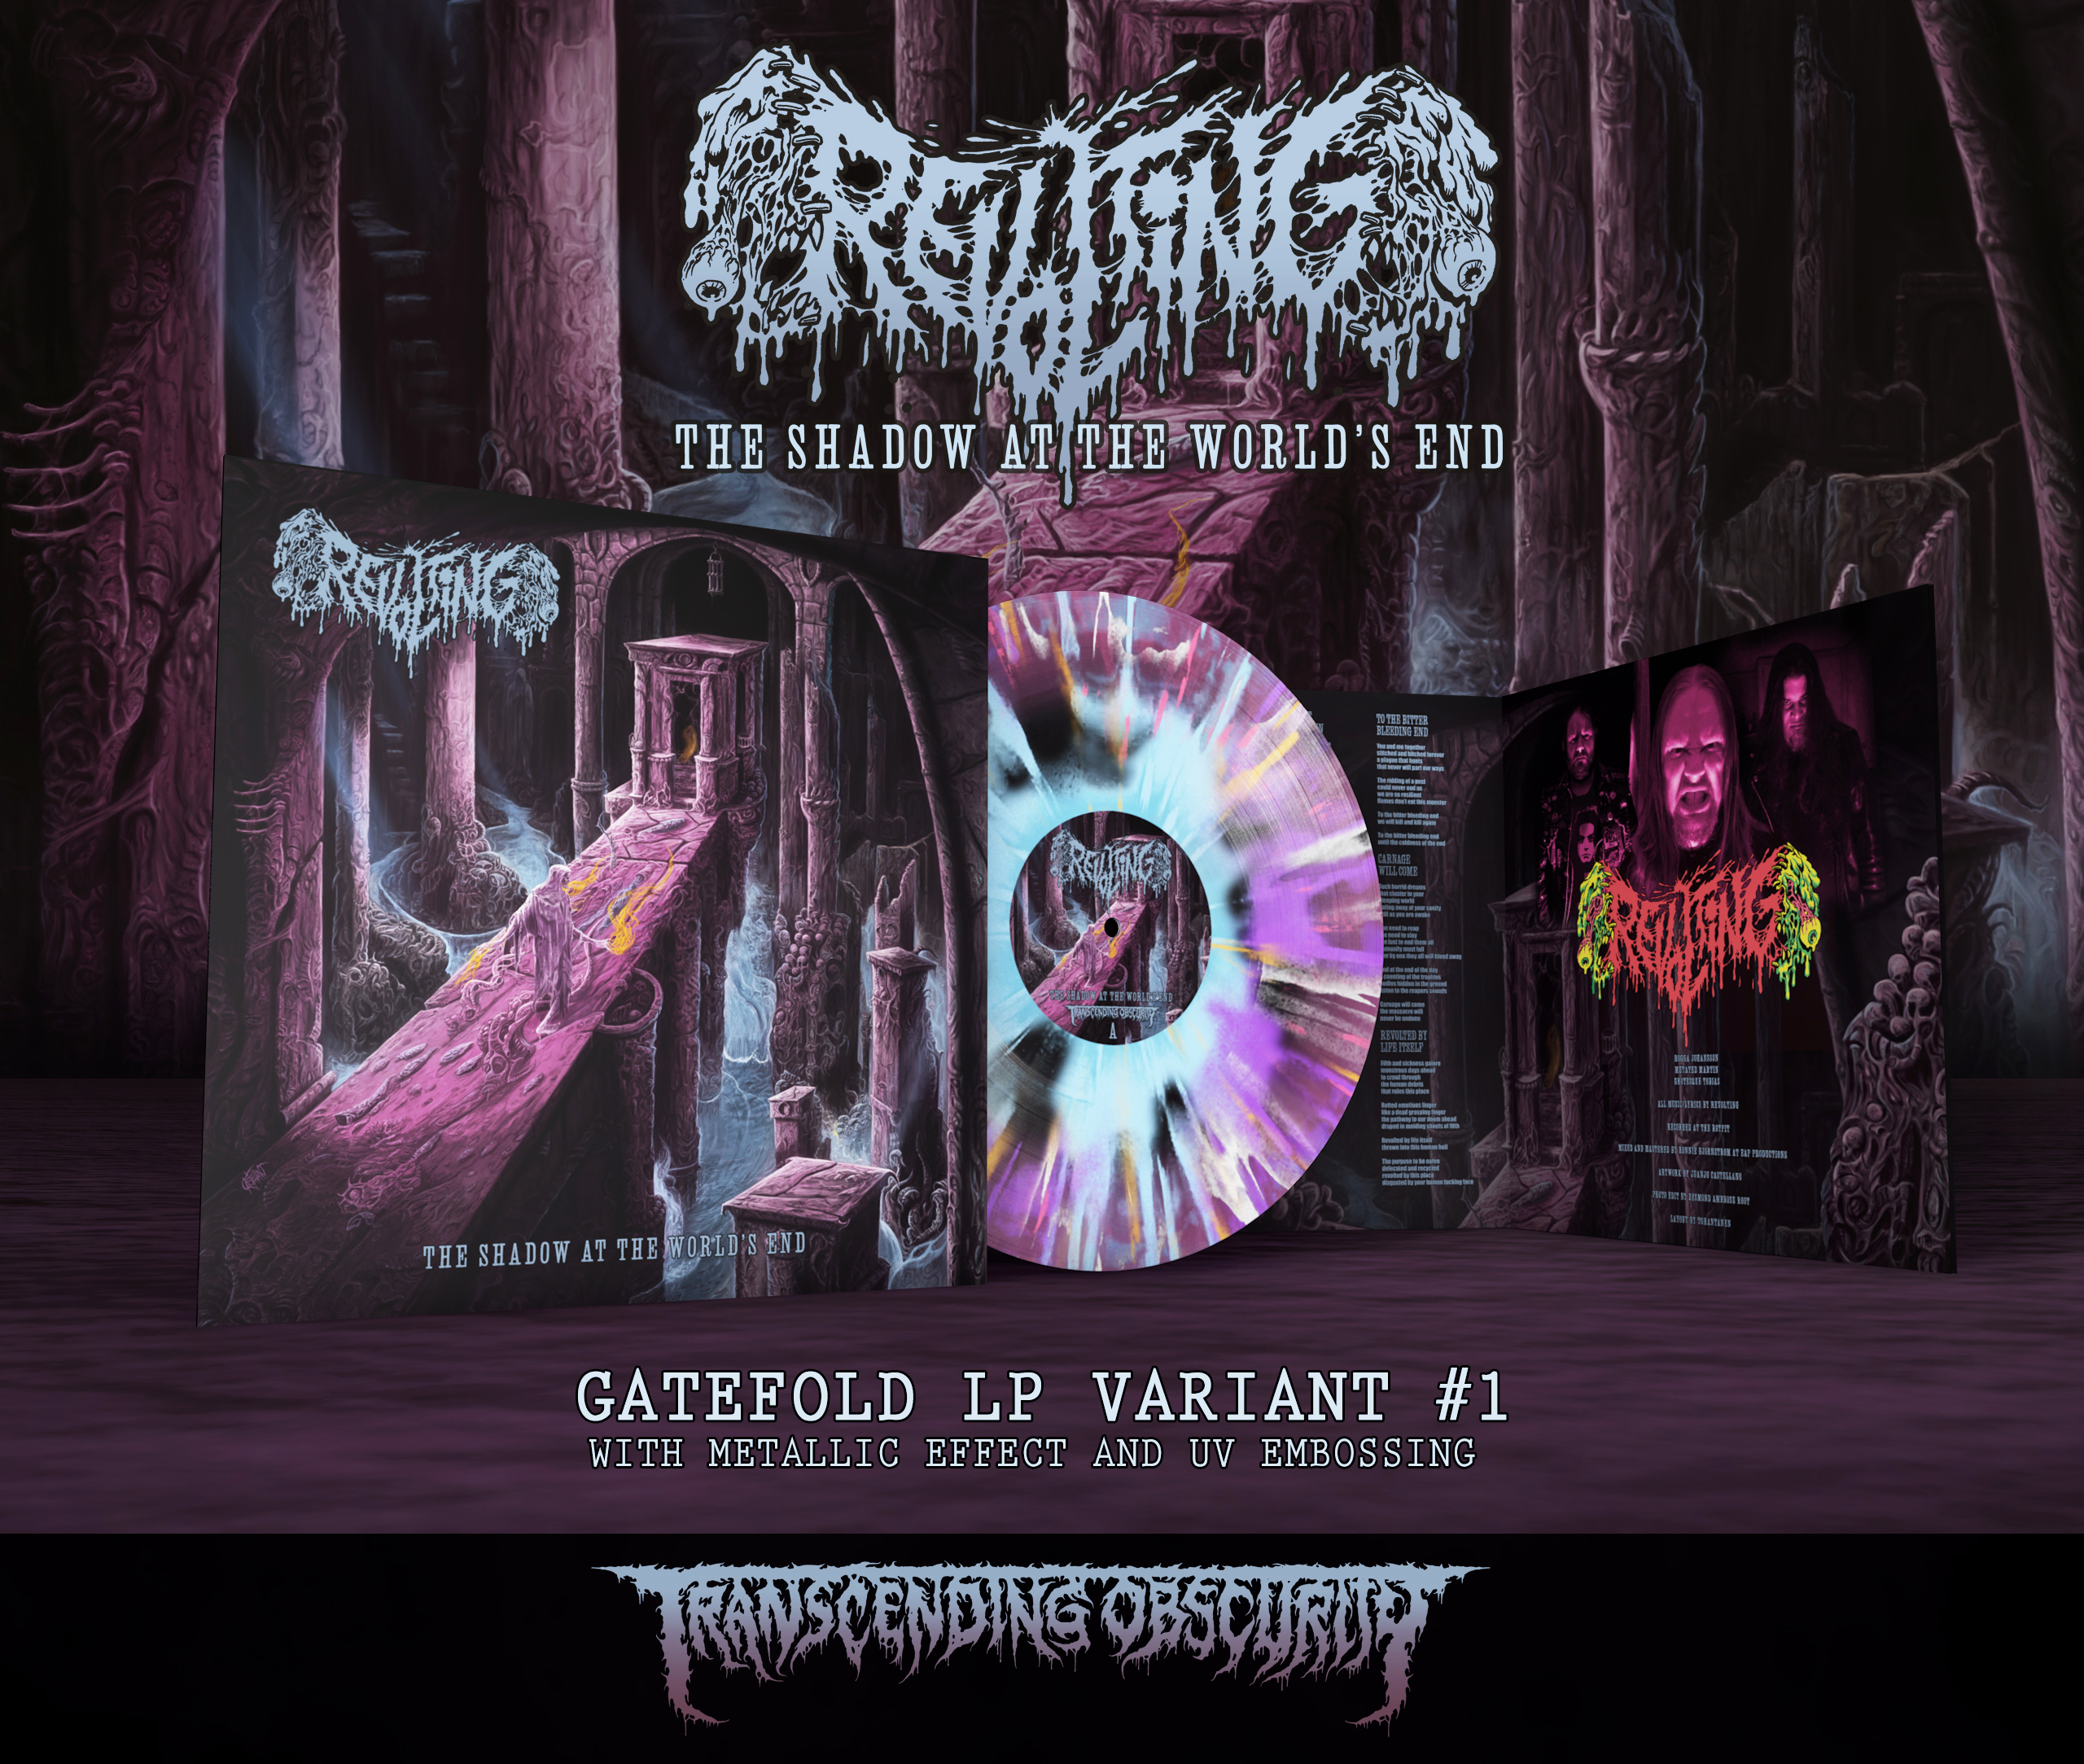 REVOLTING - The Shadow At The World's End Gatefold LP with Metallic Effect and UV Embossing